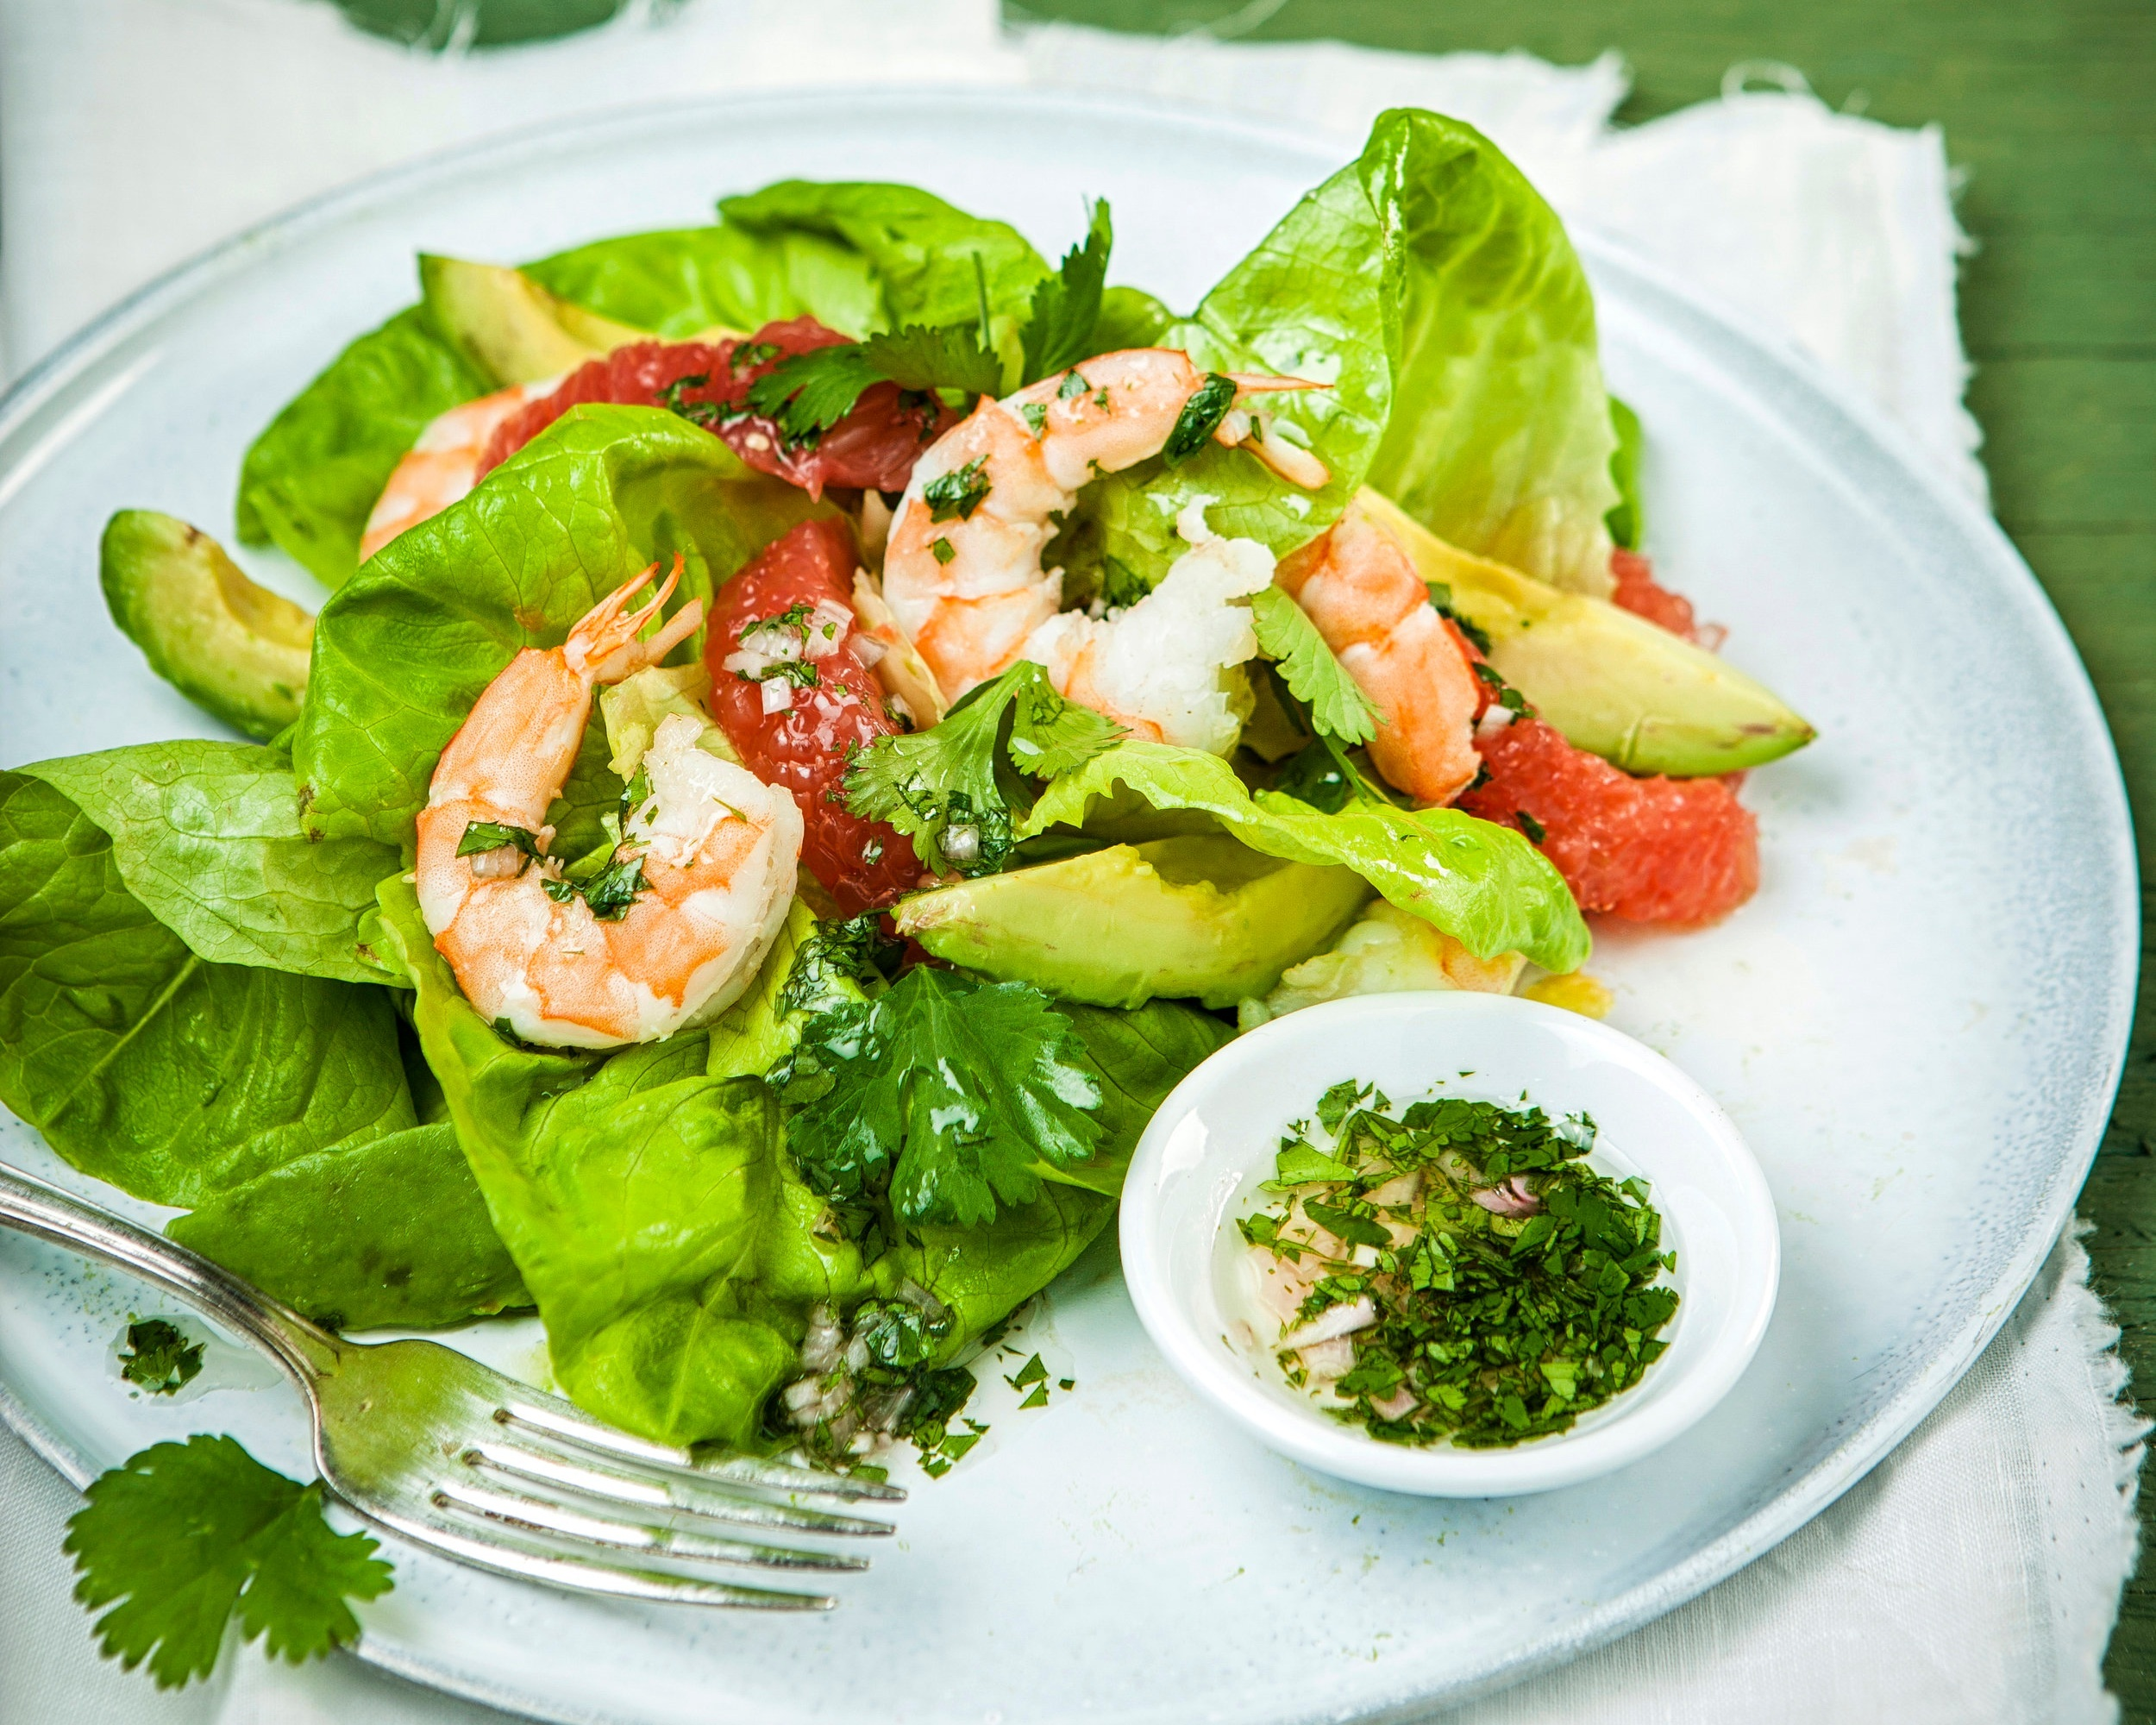 Shrimp and avocado salad with cilantro vinaigrette